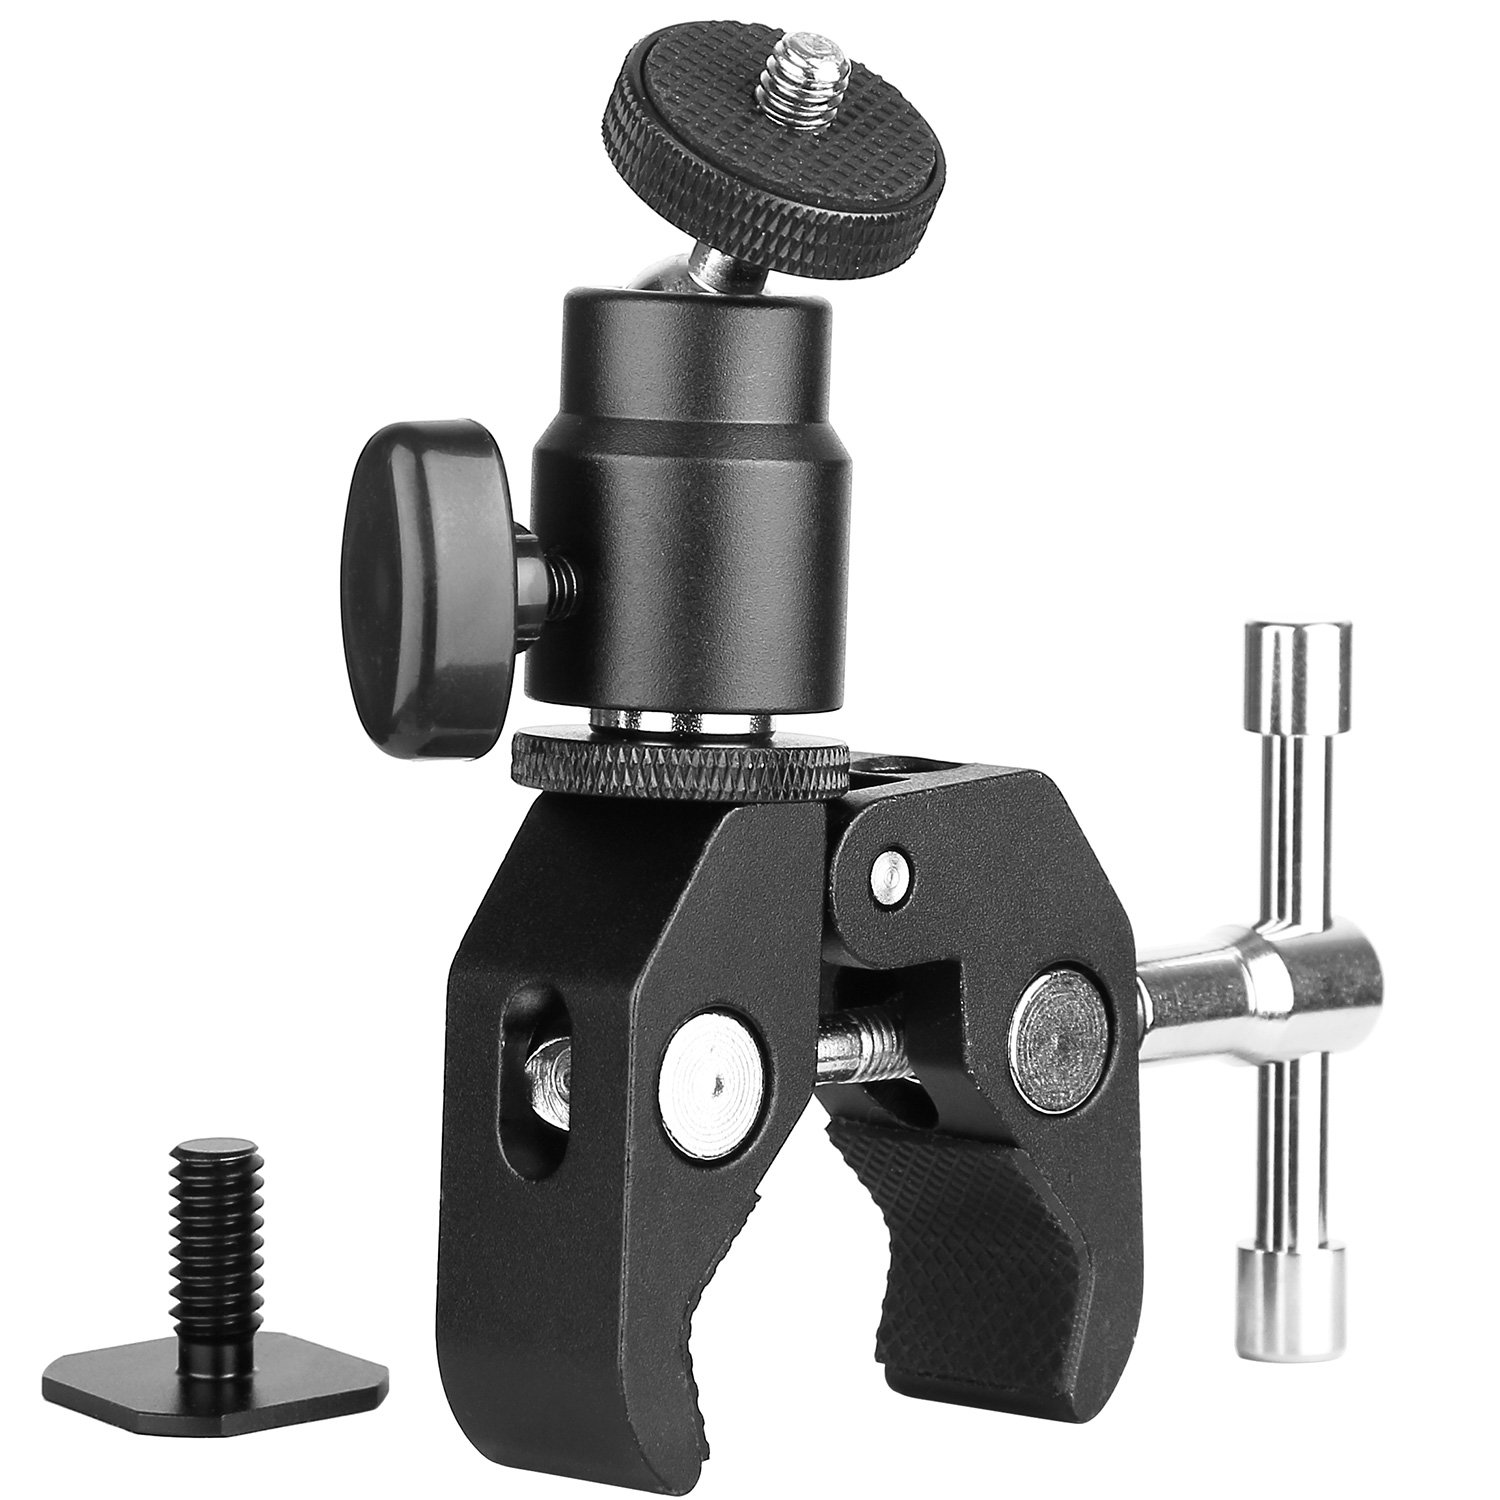 ChromLives Camera Clamp Mount Ball Head Clamp - Super Clamp and Mini Ball Head Hot Shoe Mount Adapter with 1/4'' -20 Tripod Screw for LCD/DV Monitor, LED Lights, Flash Light,Microphone and More by ChromLives